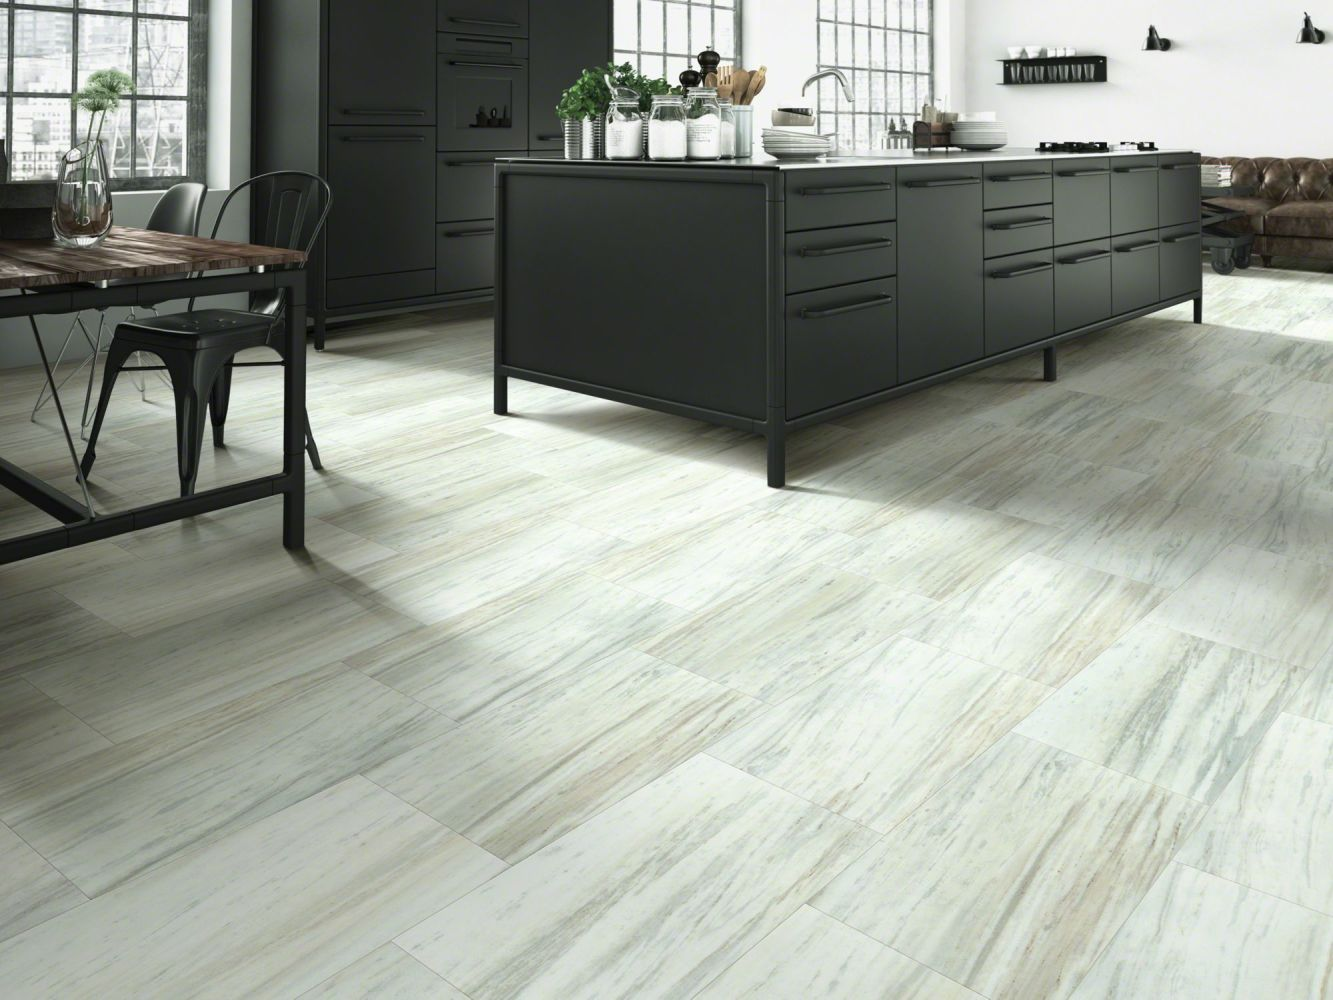 Shaw Floors Vinyl Residential Set In Stone 720c Plus Glacier 00147_0834V